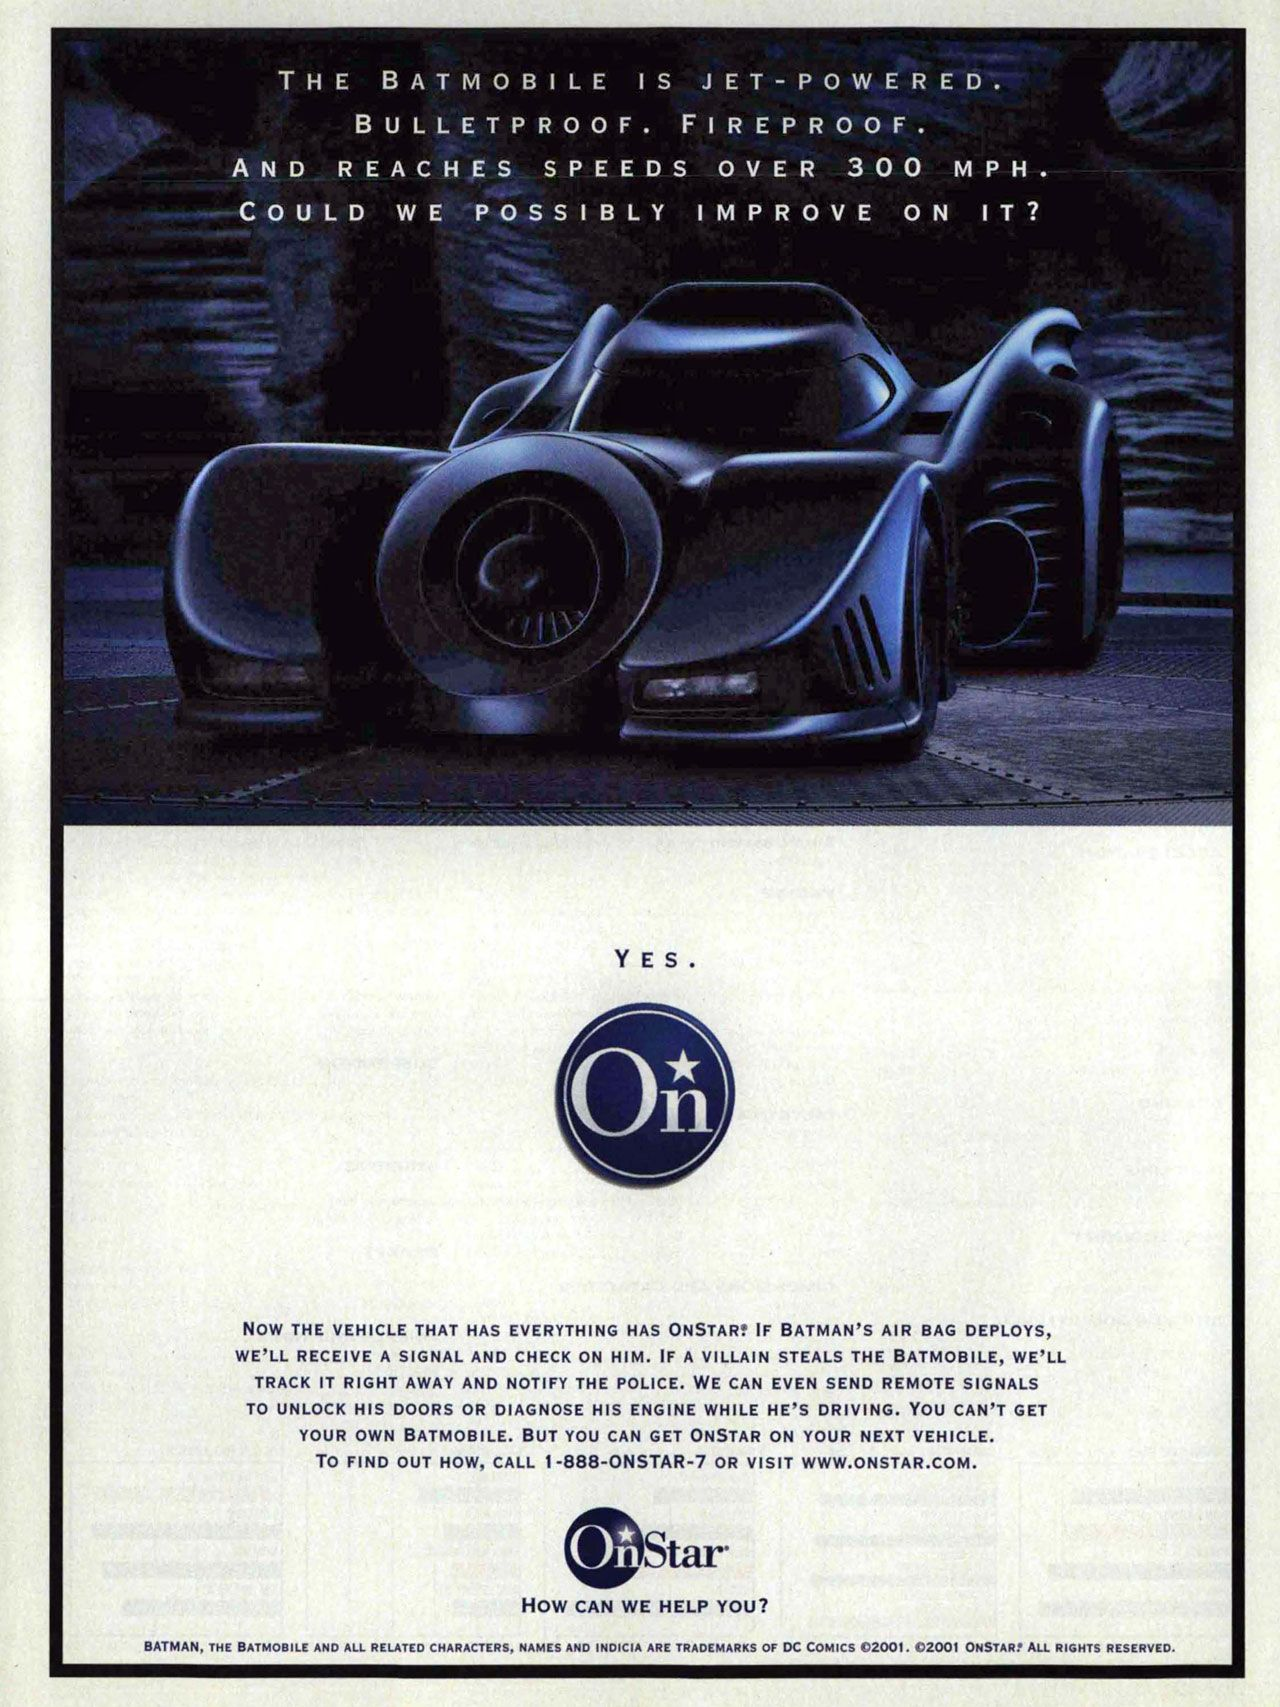 The Batmobile is jet-powered, bulletproof, fireproof, and reaches speeds over 300 MPH. Could we possibly improve on it? Yes. OnStar. NOW THE VEHICLE THAT HAS EVERYTHING HAS ONSTAR: IF BATMAN'S AIR BAG DEPLOYS, WE'LL RECEIVE A SIGNAL AND CHECK ON HIM. IF A VILLAIN STEALS THE BATMOBILE, WE'LL TRACK IT RIGHT AWAY AND NOTIFY THE POLICE. WE CAN EVEN SEND REMOTE SIGNALS TO UNLOCK HIS DOORS OR DIAGNOSE HIS ENGINE WHILE HE'S DRIVING. YOU CAN'T GET YOUR OWN BATMOBILE. BUT YOU CAN GET ONSTAR ON YOUR NEXT VEHICLE. TO FIND OUT HOW, CALL 1 -888-ONSTAR-7 OR VISIT WWW.ONSTAR.COM. BATMAN, THE BATMOBILE AND ALL RELATED CHARACTERS, NAMES AND INDICIA ARE TRADEMARKS OF DC COMICS (C)2001. (C)2001 ONSTAR! ALL RIGHTS RESERVED. How can we help you?